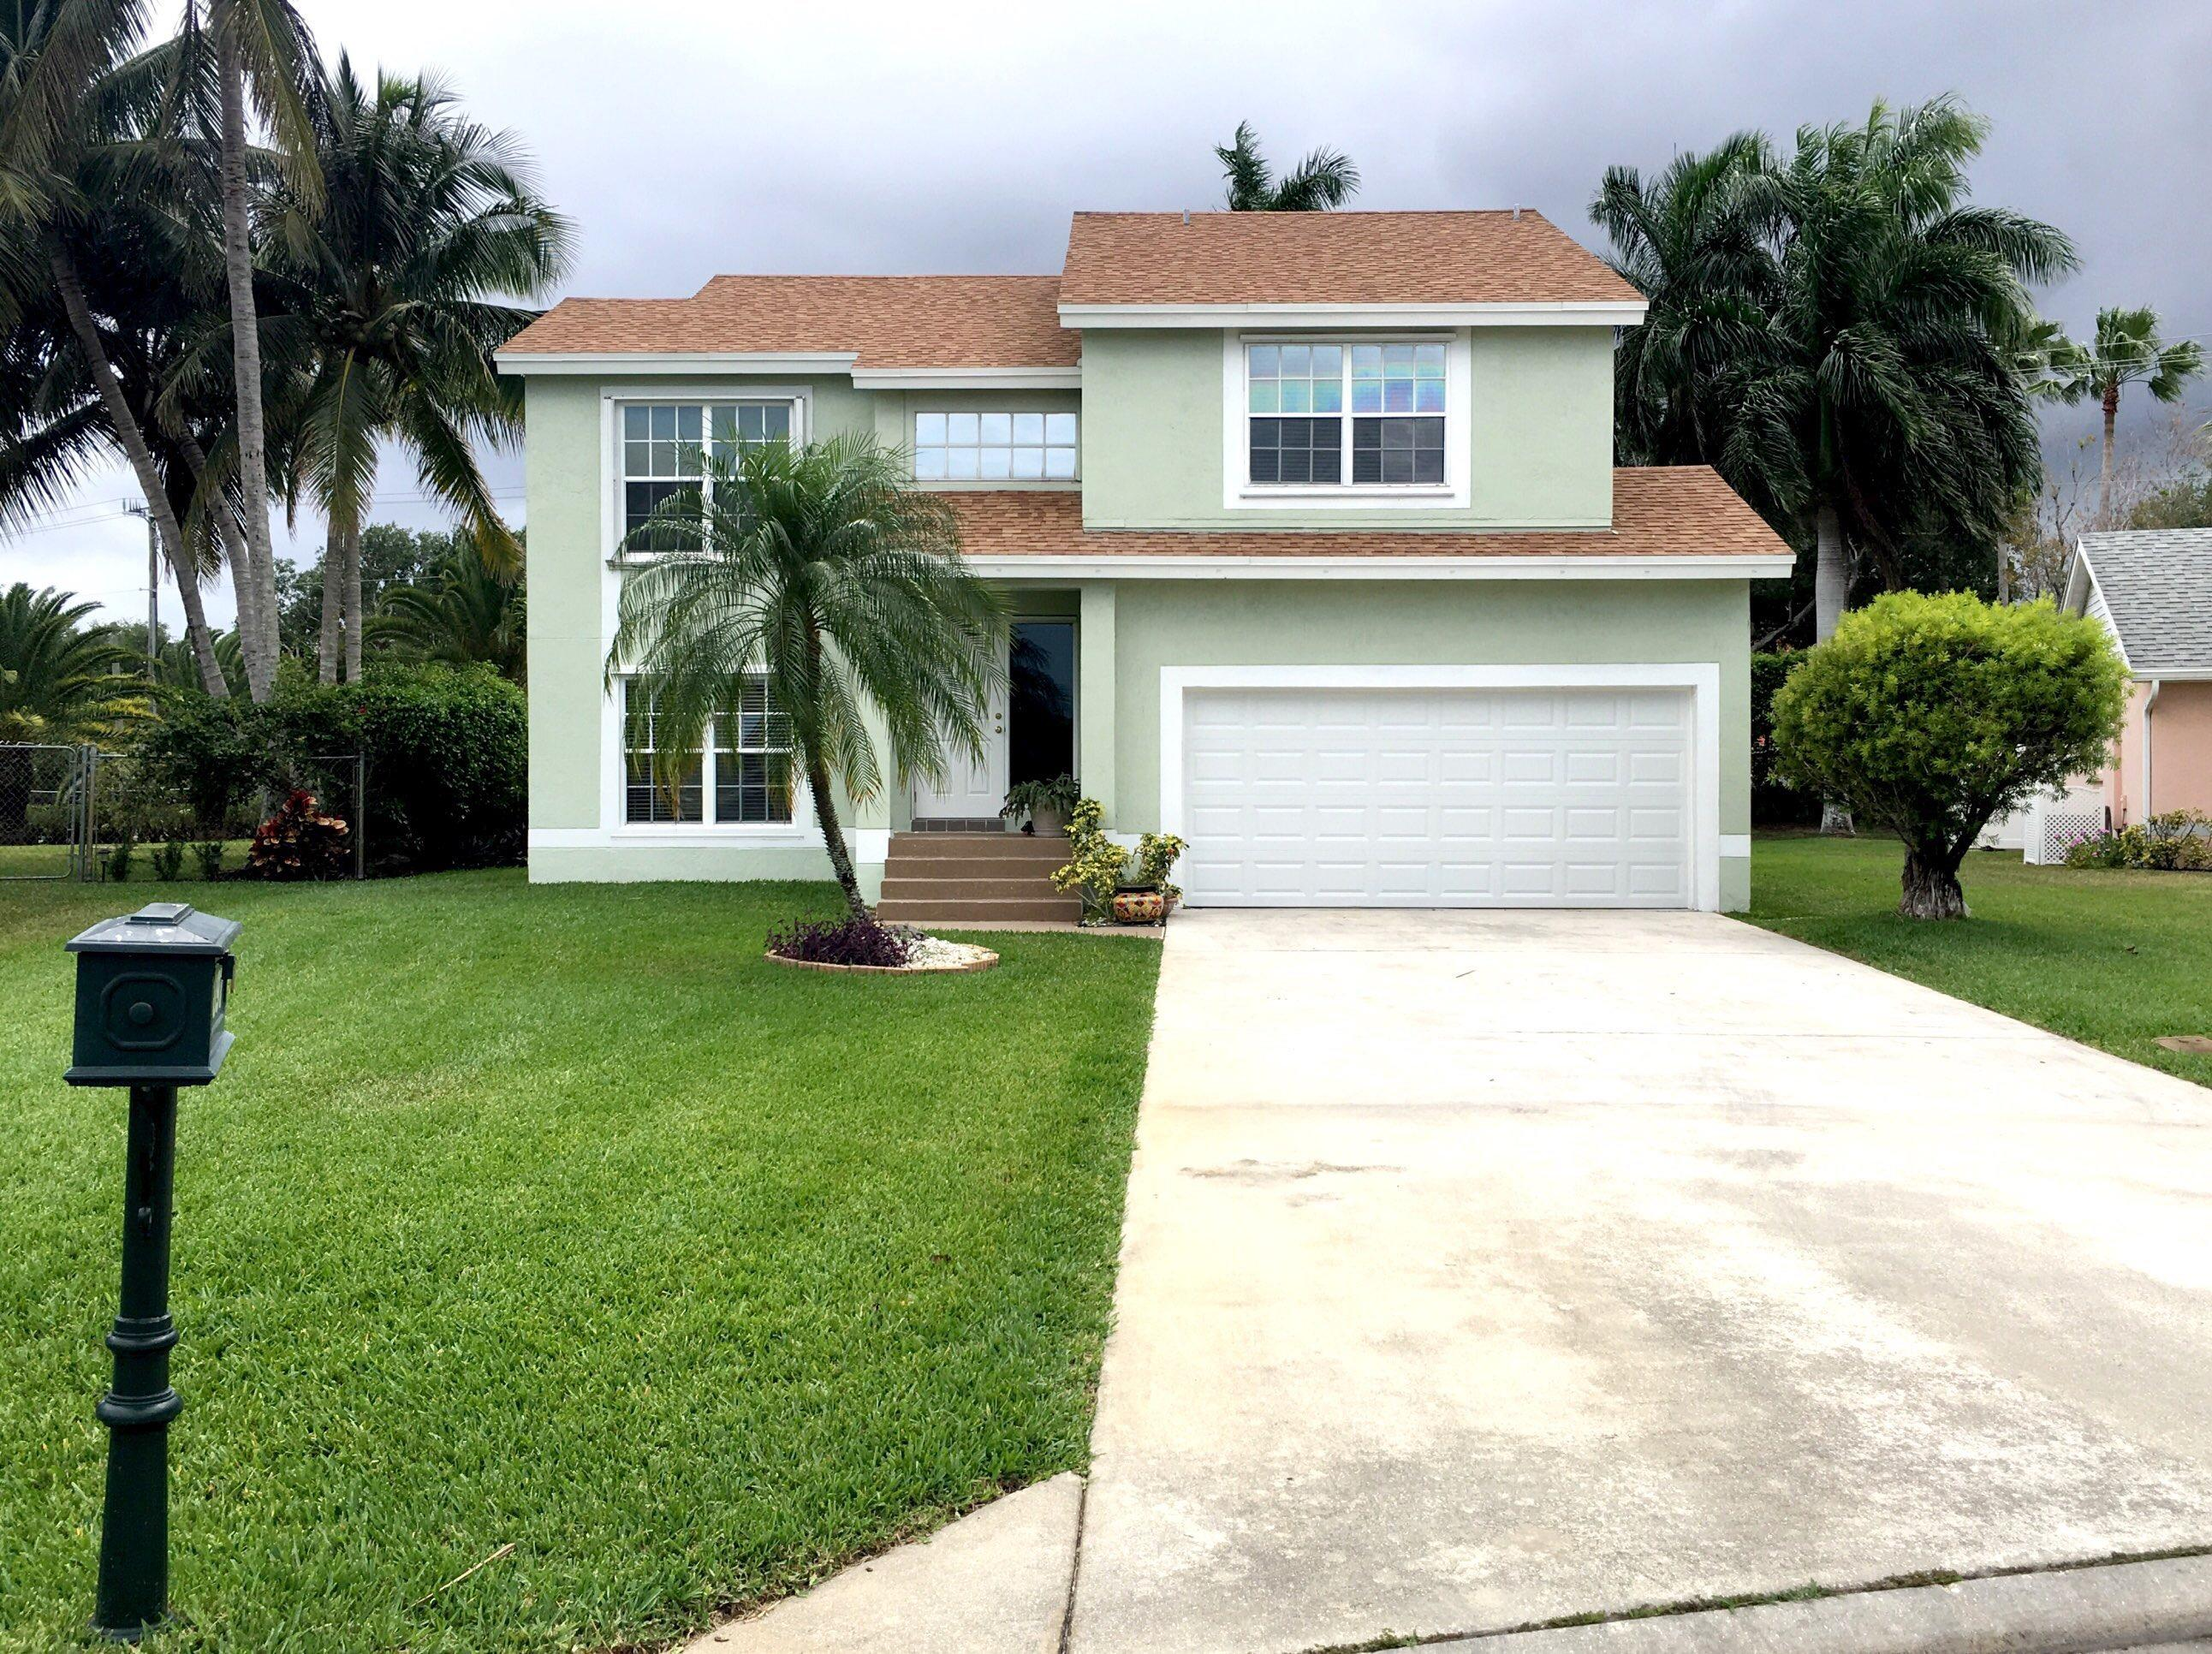 Photo of 6897 Barnwell Drive, Boynton Beach, FL 33437